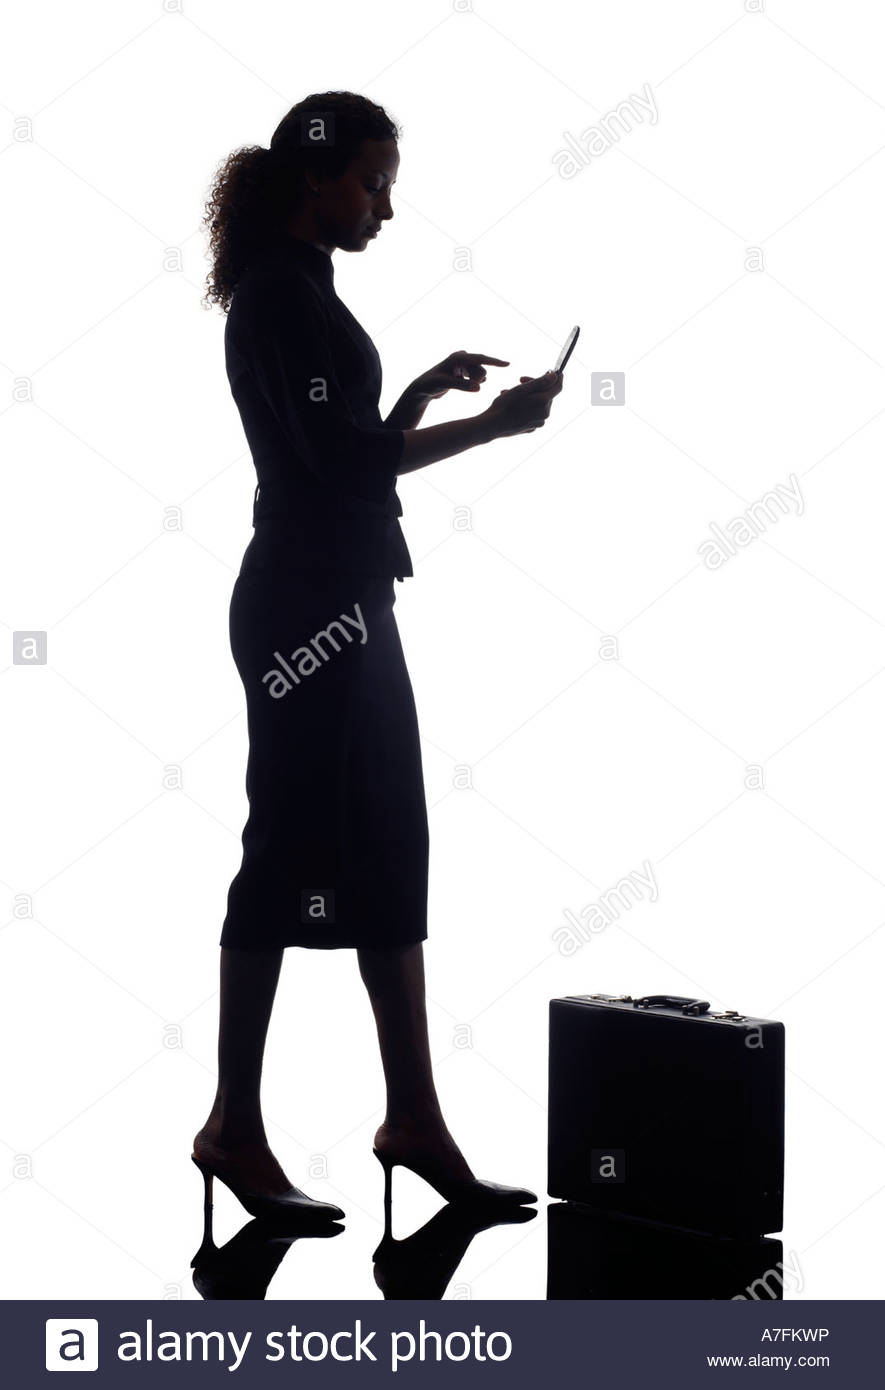 885x1390 Business Woman Silhouette Stock Photo 11826273